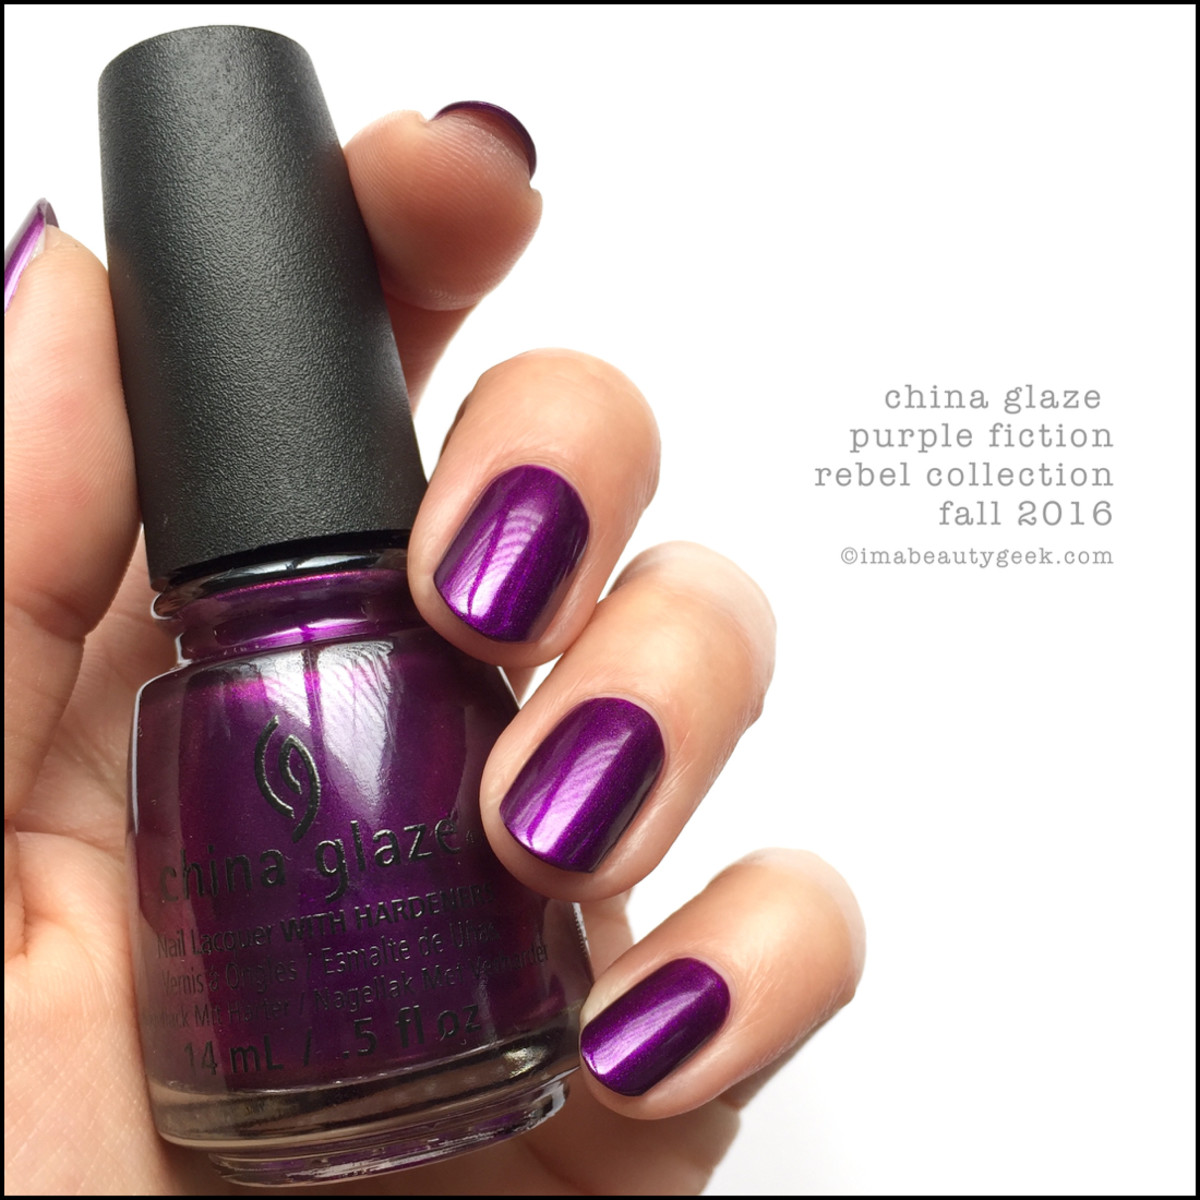 China Glaze Purple Fiction_China Glaze Rebel 2016 Collection Swatches Review